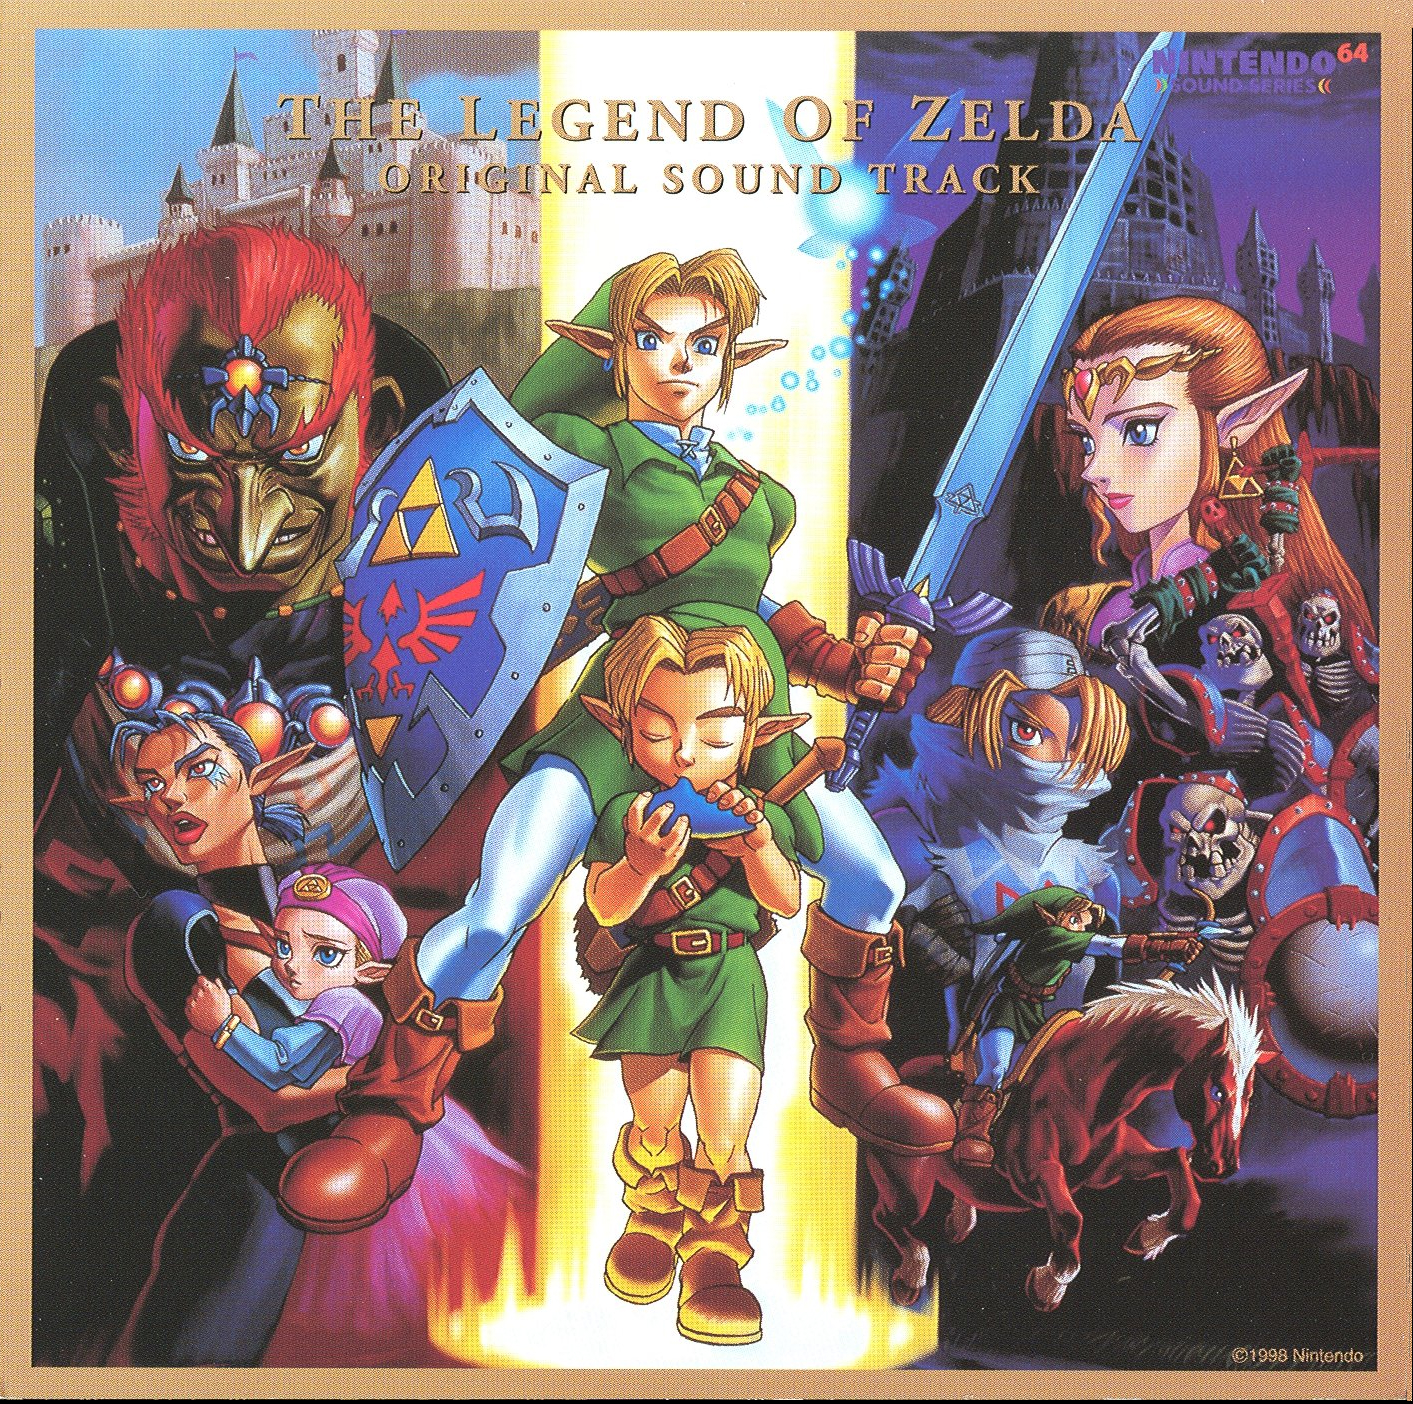 the_legend_of_zelda_ocarina_of_time_original_soundtrack.jpg